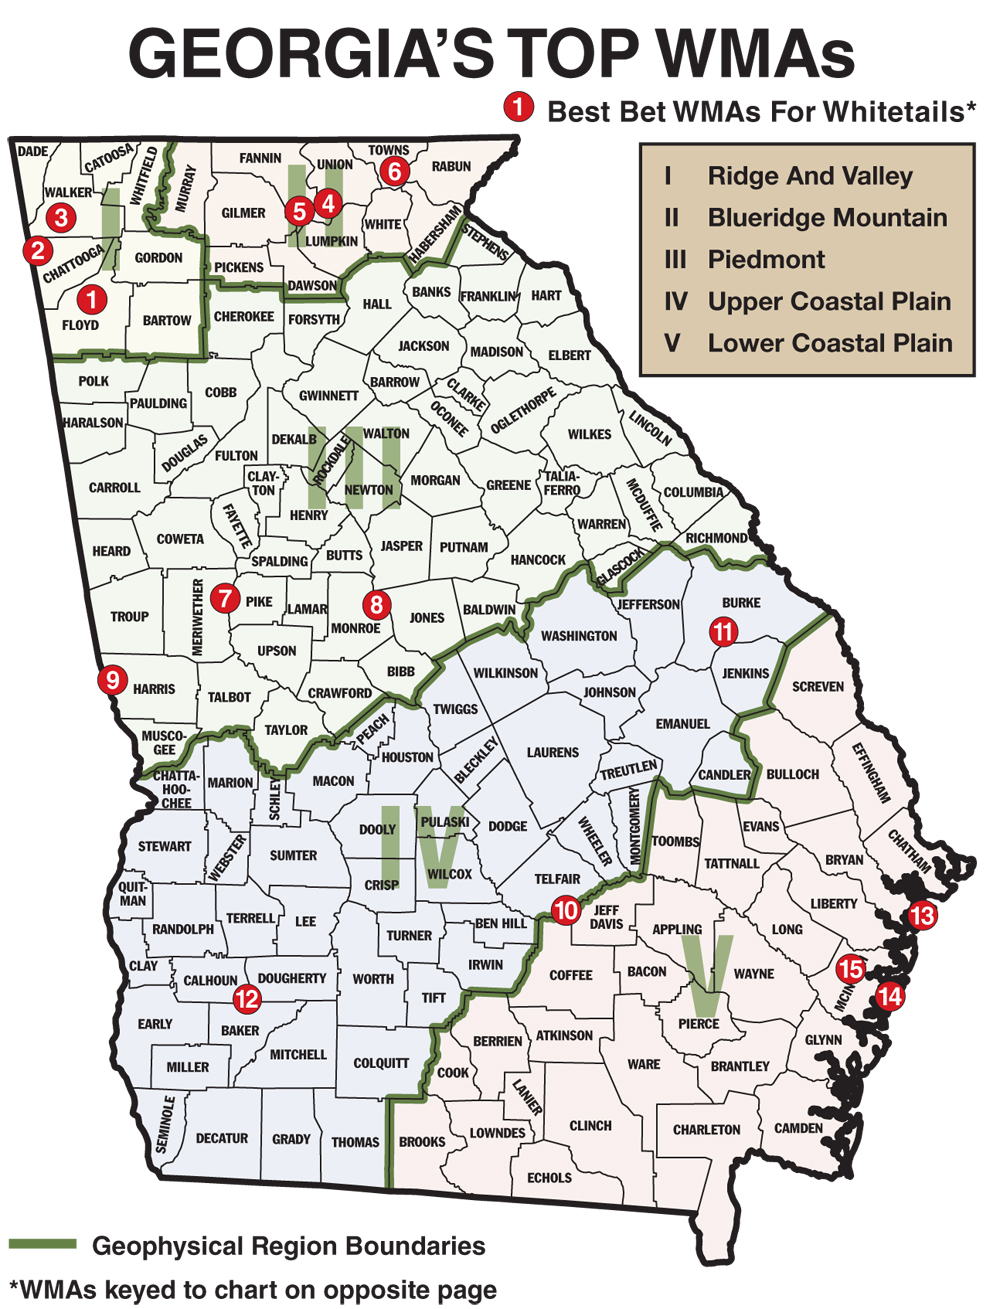 Georgia has a generous amount of whitetail deer for hunters to pursue. With a statewide